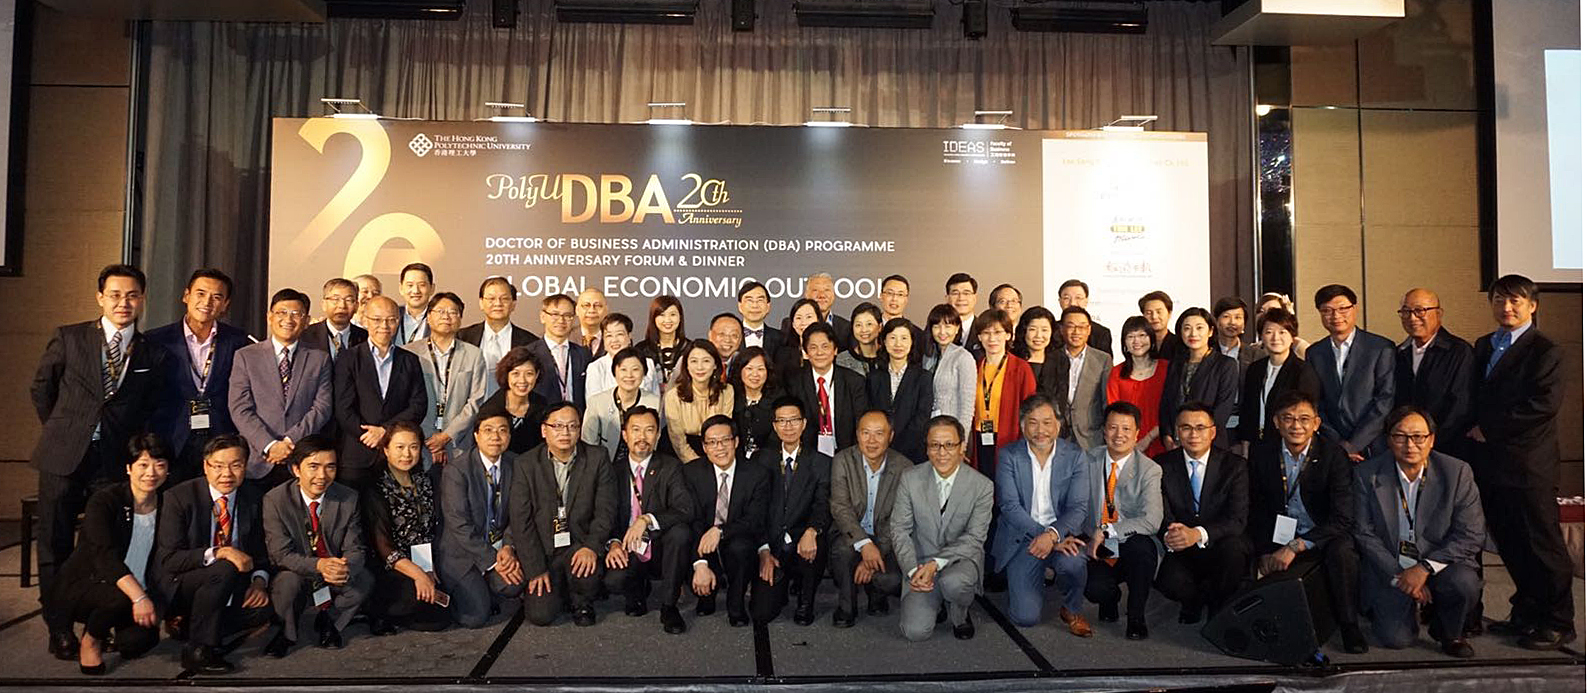 PolyU DBA 20th Anniversary Dinner 18/11/2016